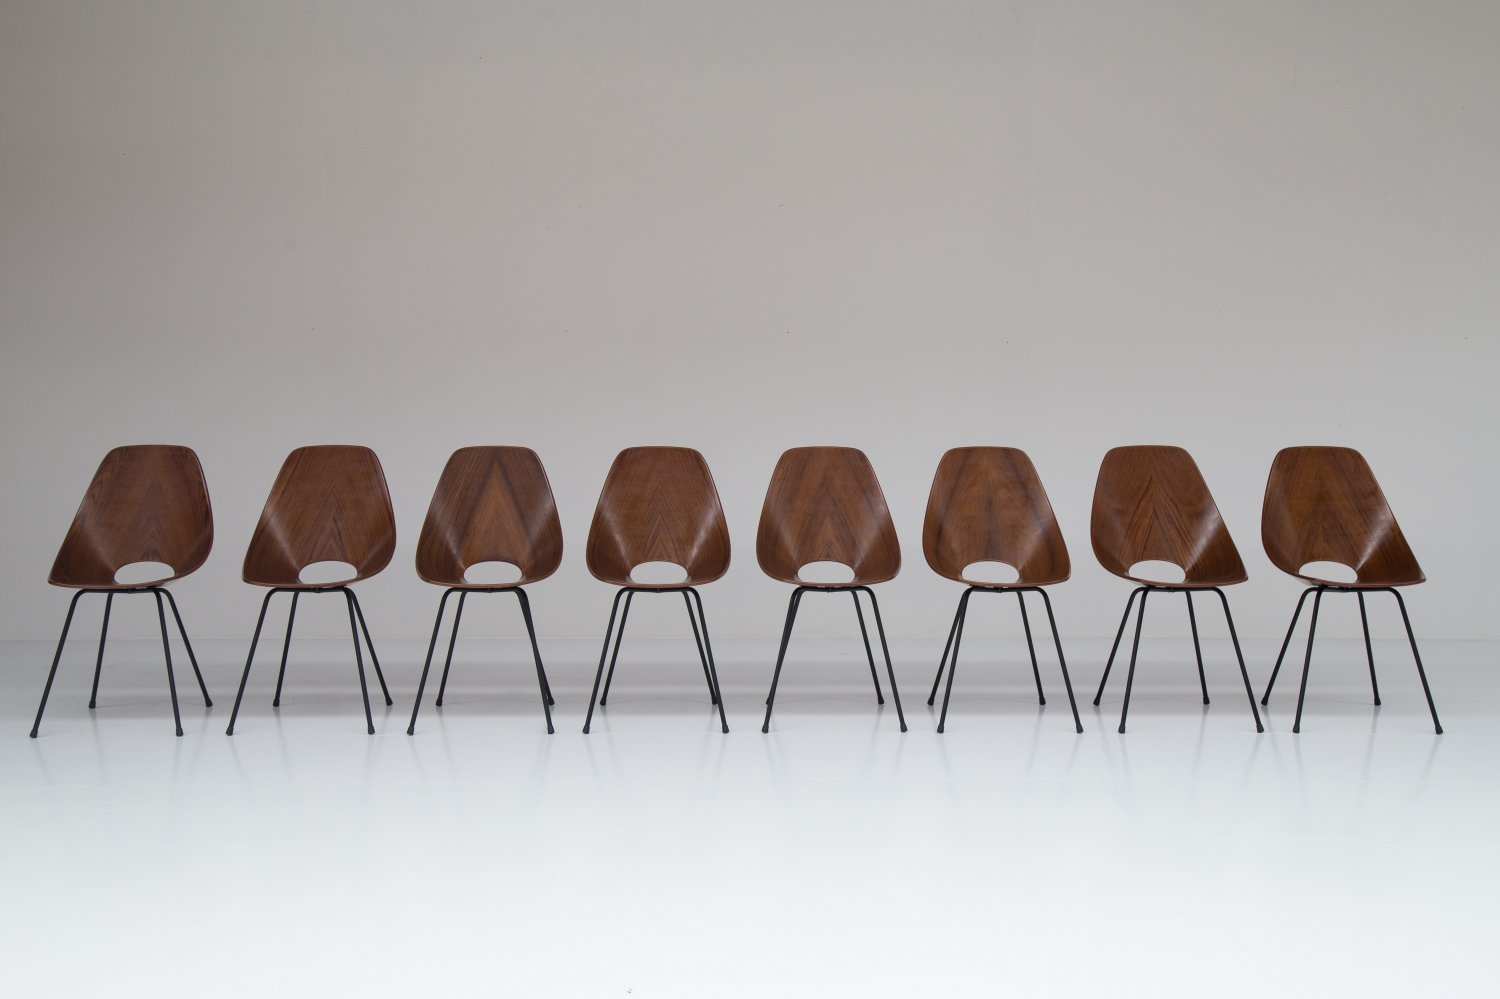 Set of 8 medea chairs by Vittorio Nobili